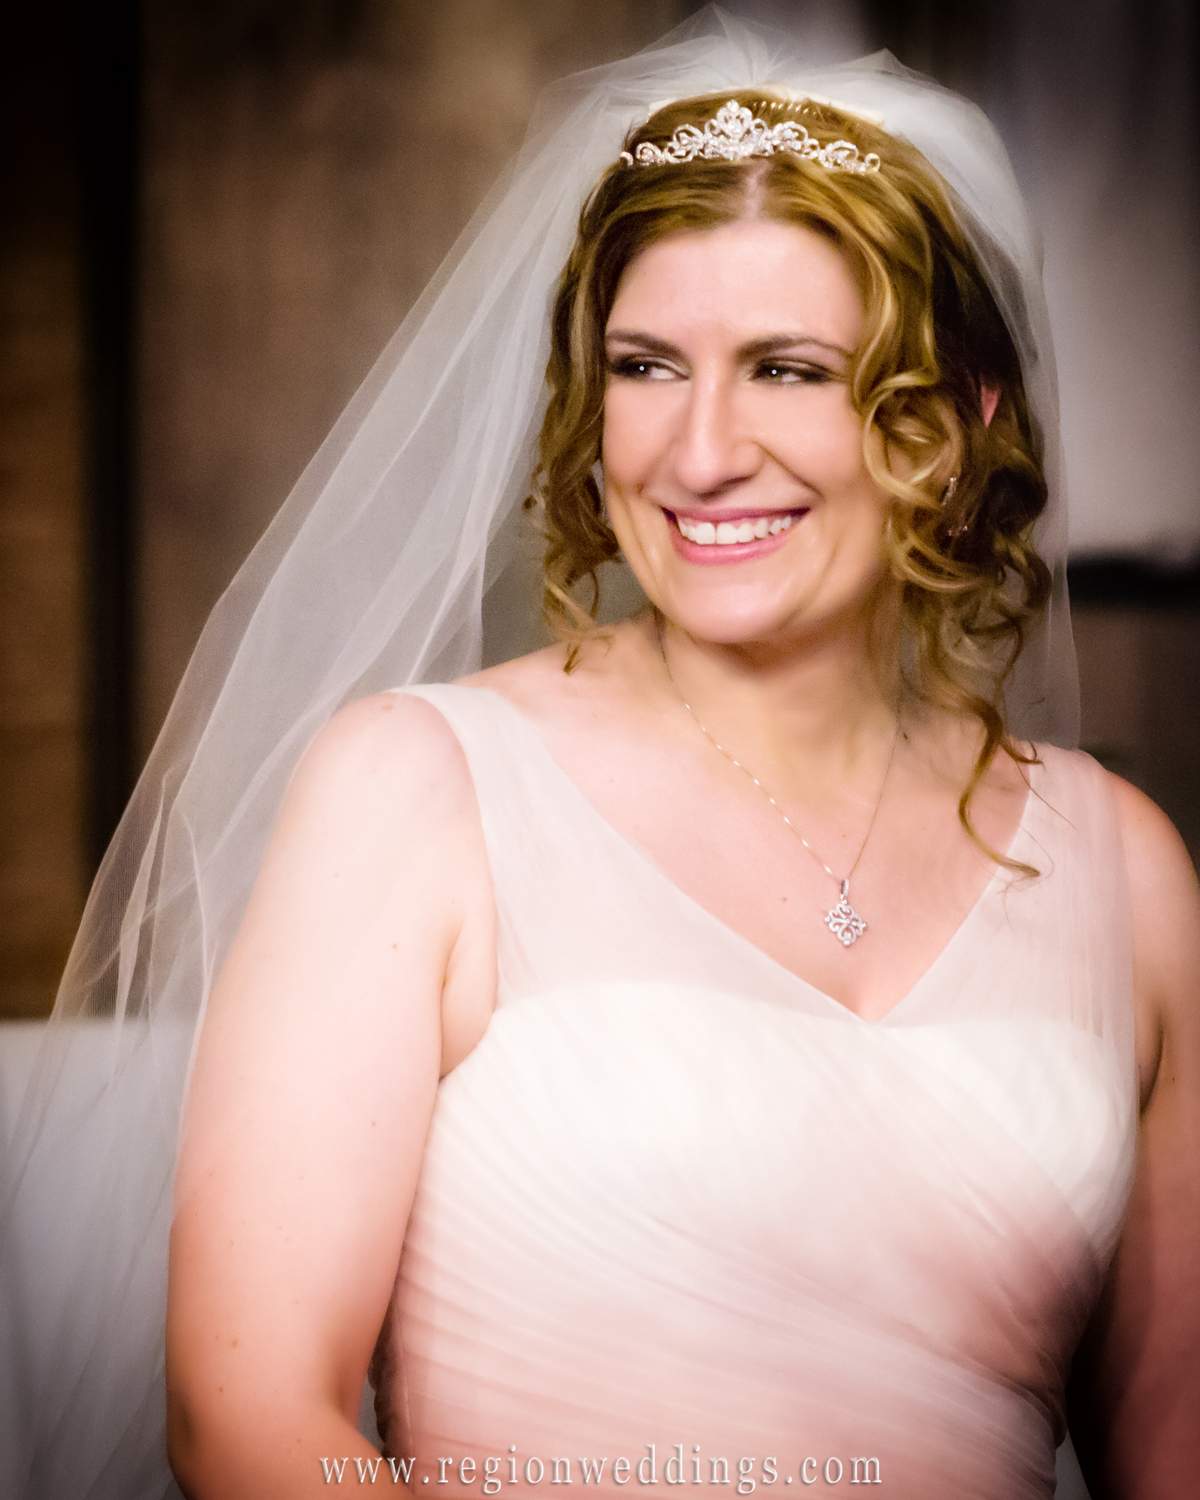 Smiling bride during her Spring wedding at Free Spirit Church in Crown Point, Indiana.